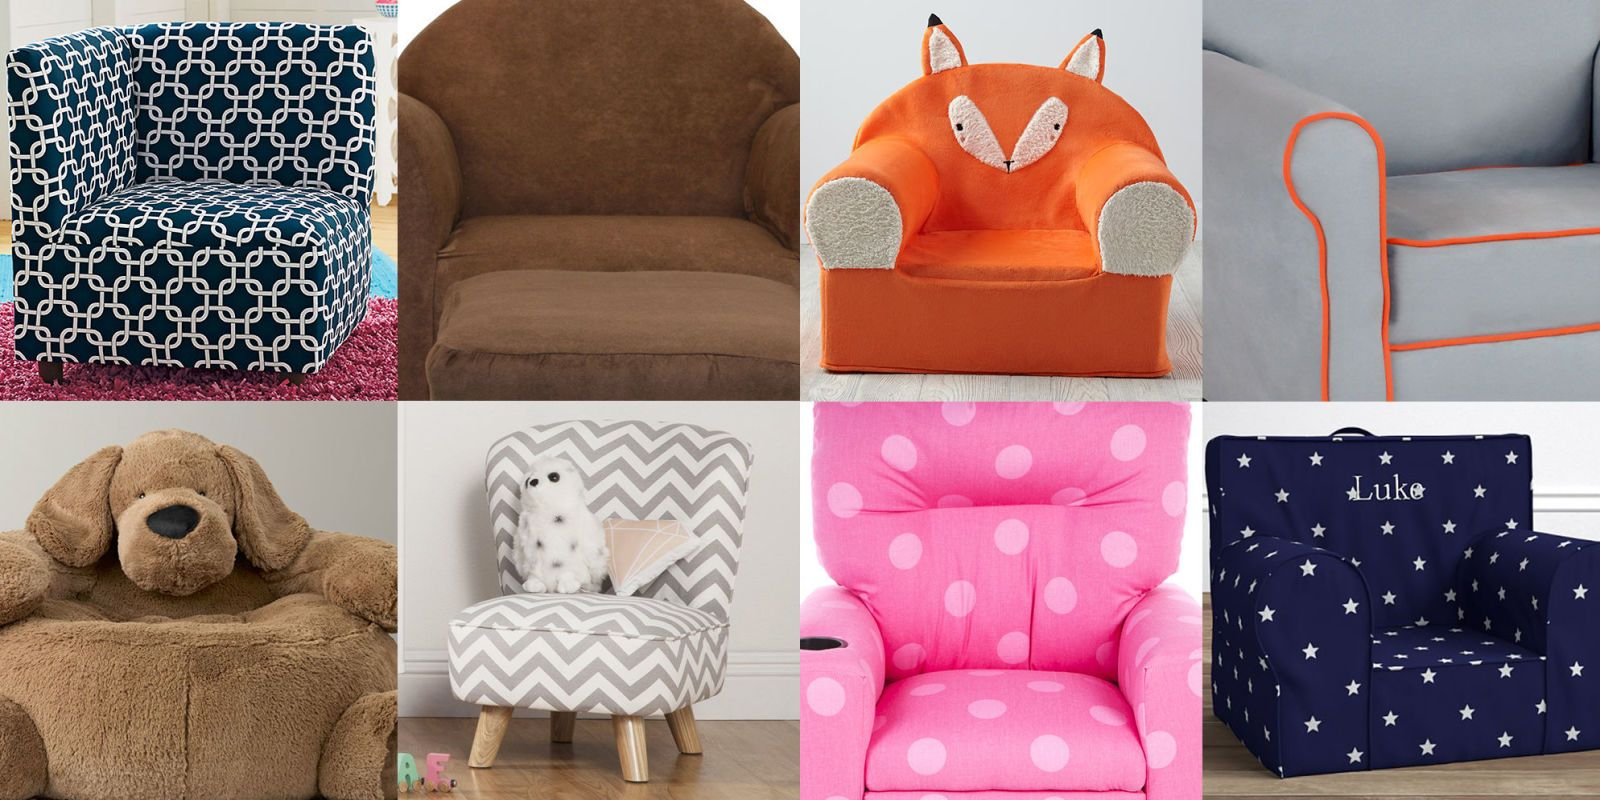 Upholstered Chairs For Kids